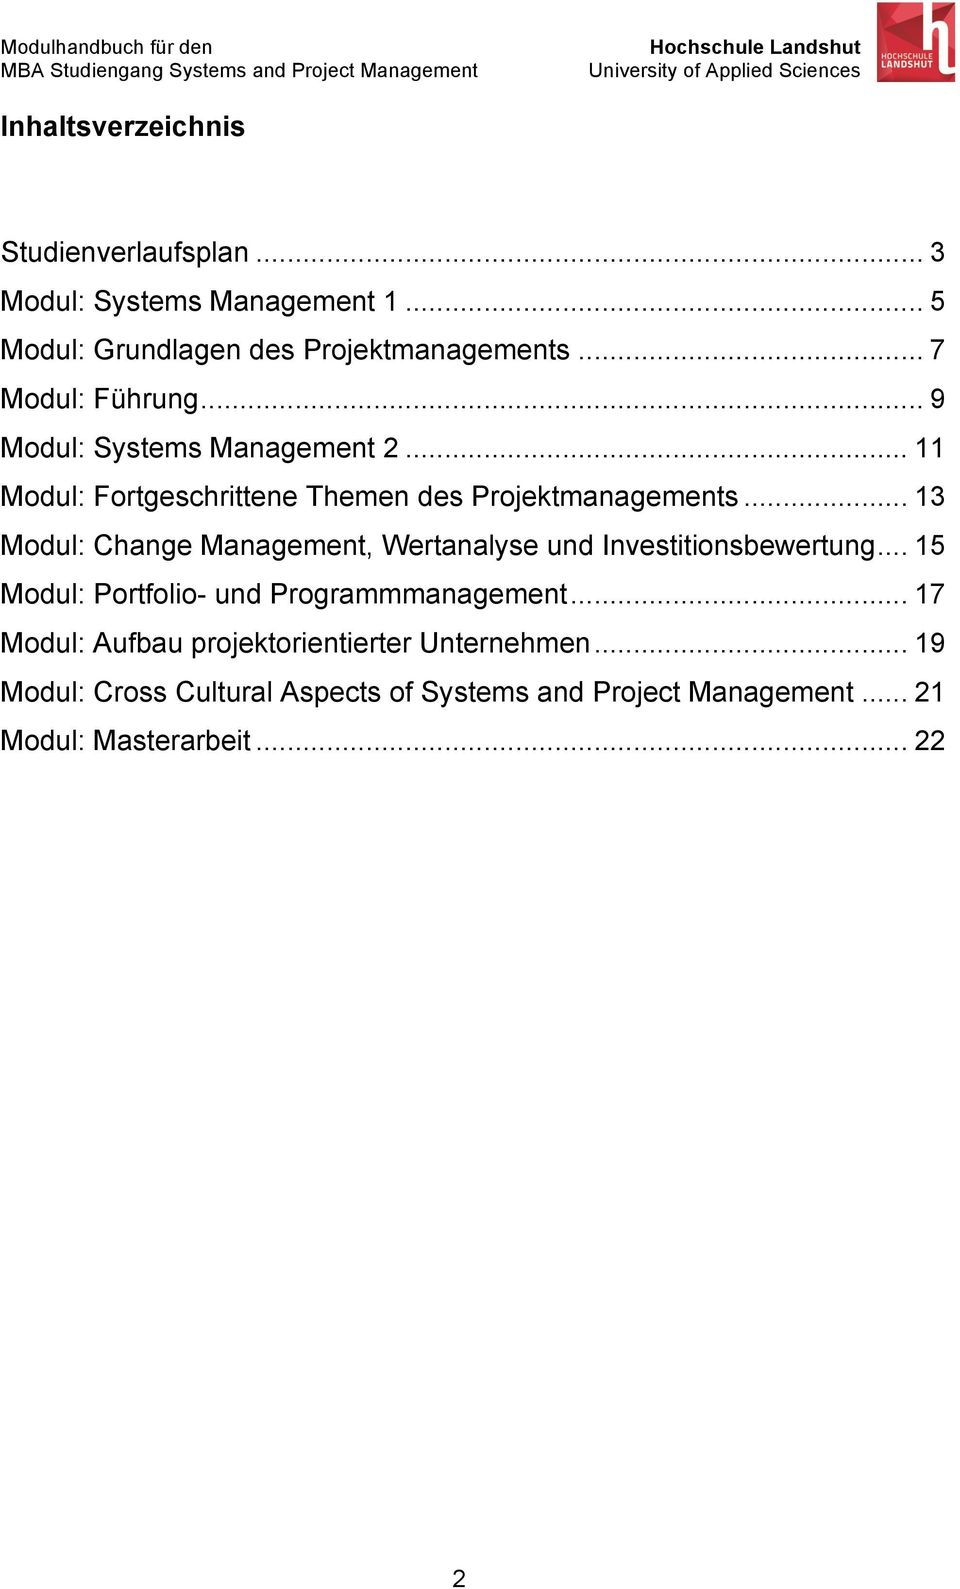 .. 13 Modul: Change Management, Wertanalyse und Investitionsbewertung... 15 Modul: Portfolio- und Programmmanagement.